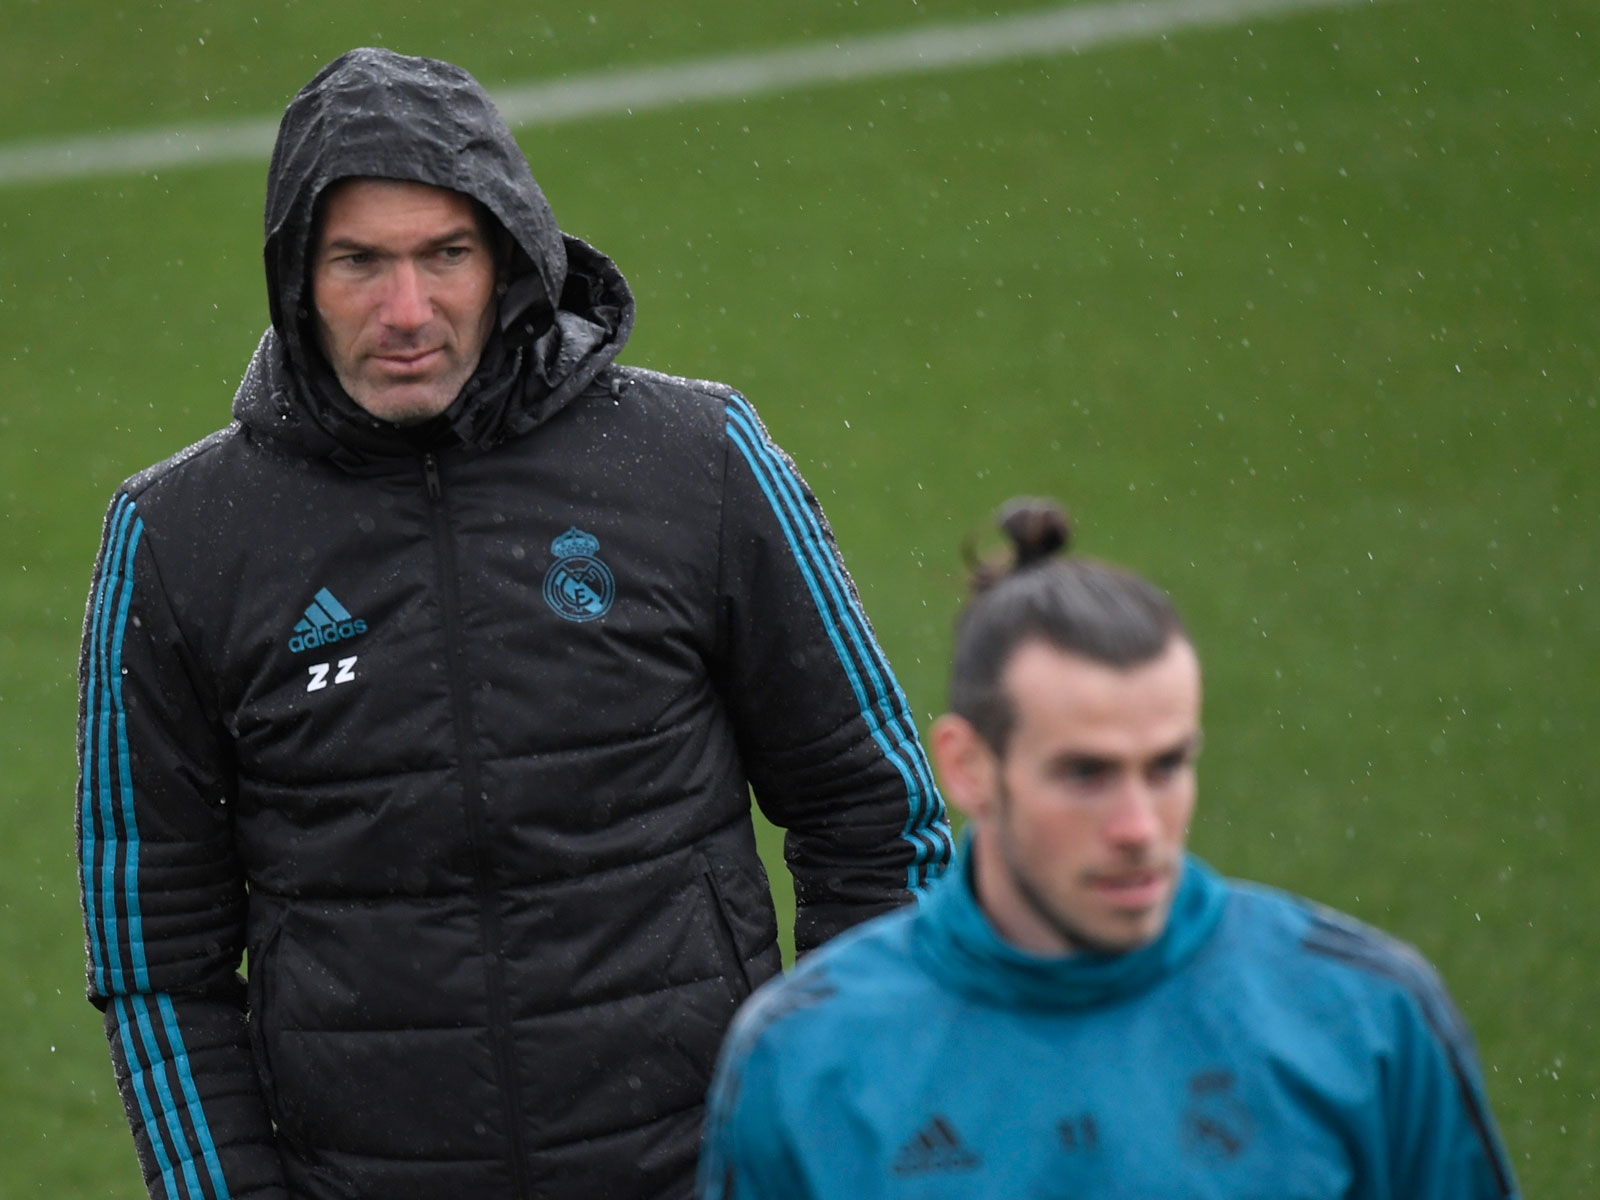 Zinedine Zidane's return to Real Madrid doesn't bode well for Gareth Bale